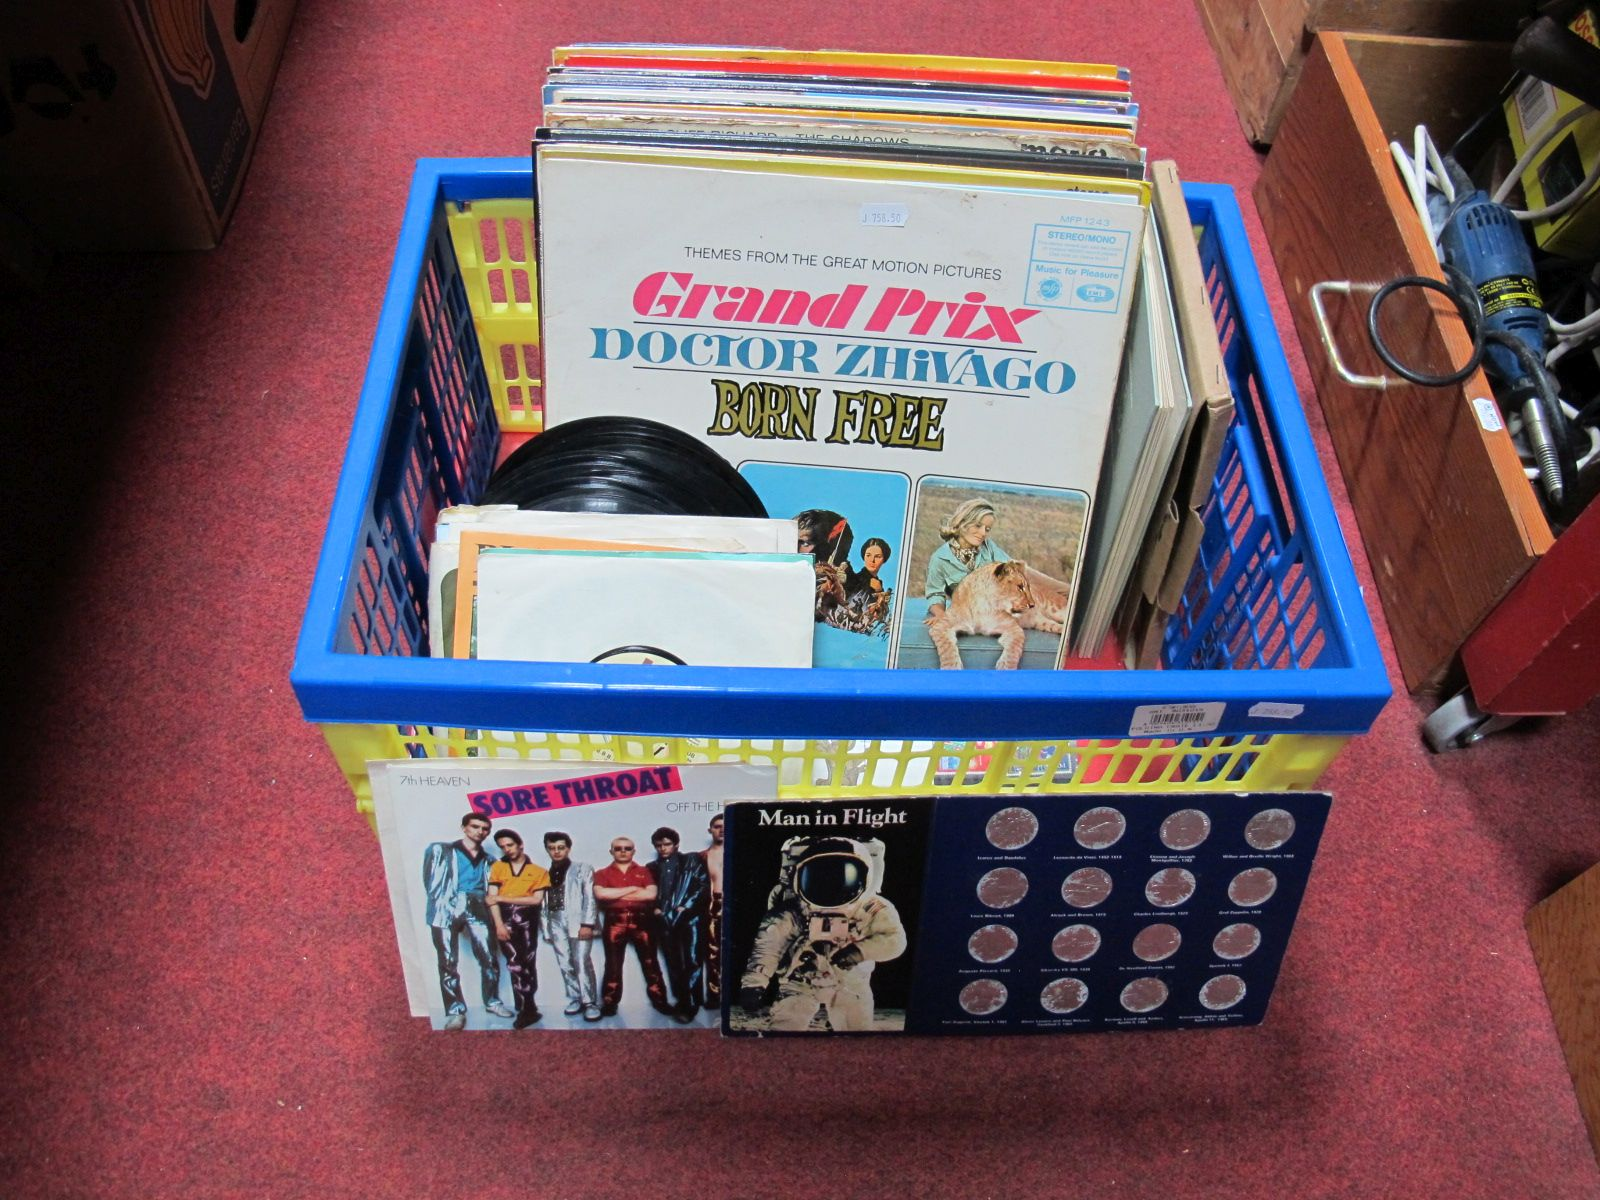 Lot 18 - A Collection of L.P.'s and 45 RPM'S, including Slade, T-Rex, soundtracks, etc, space flight